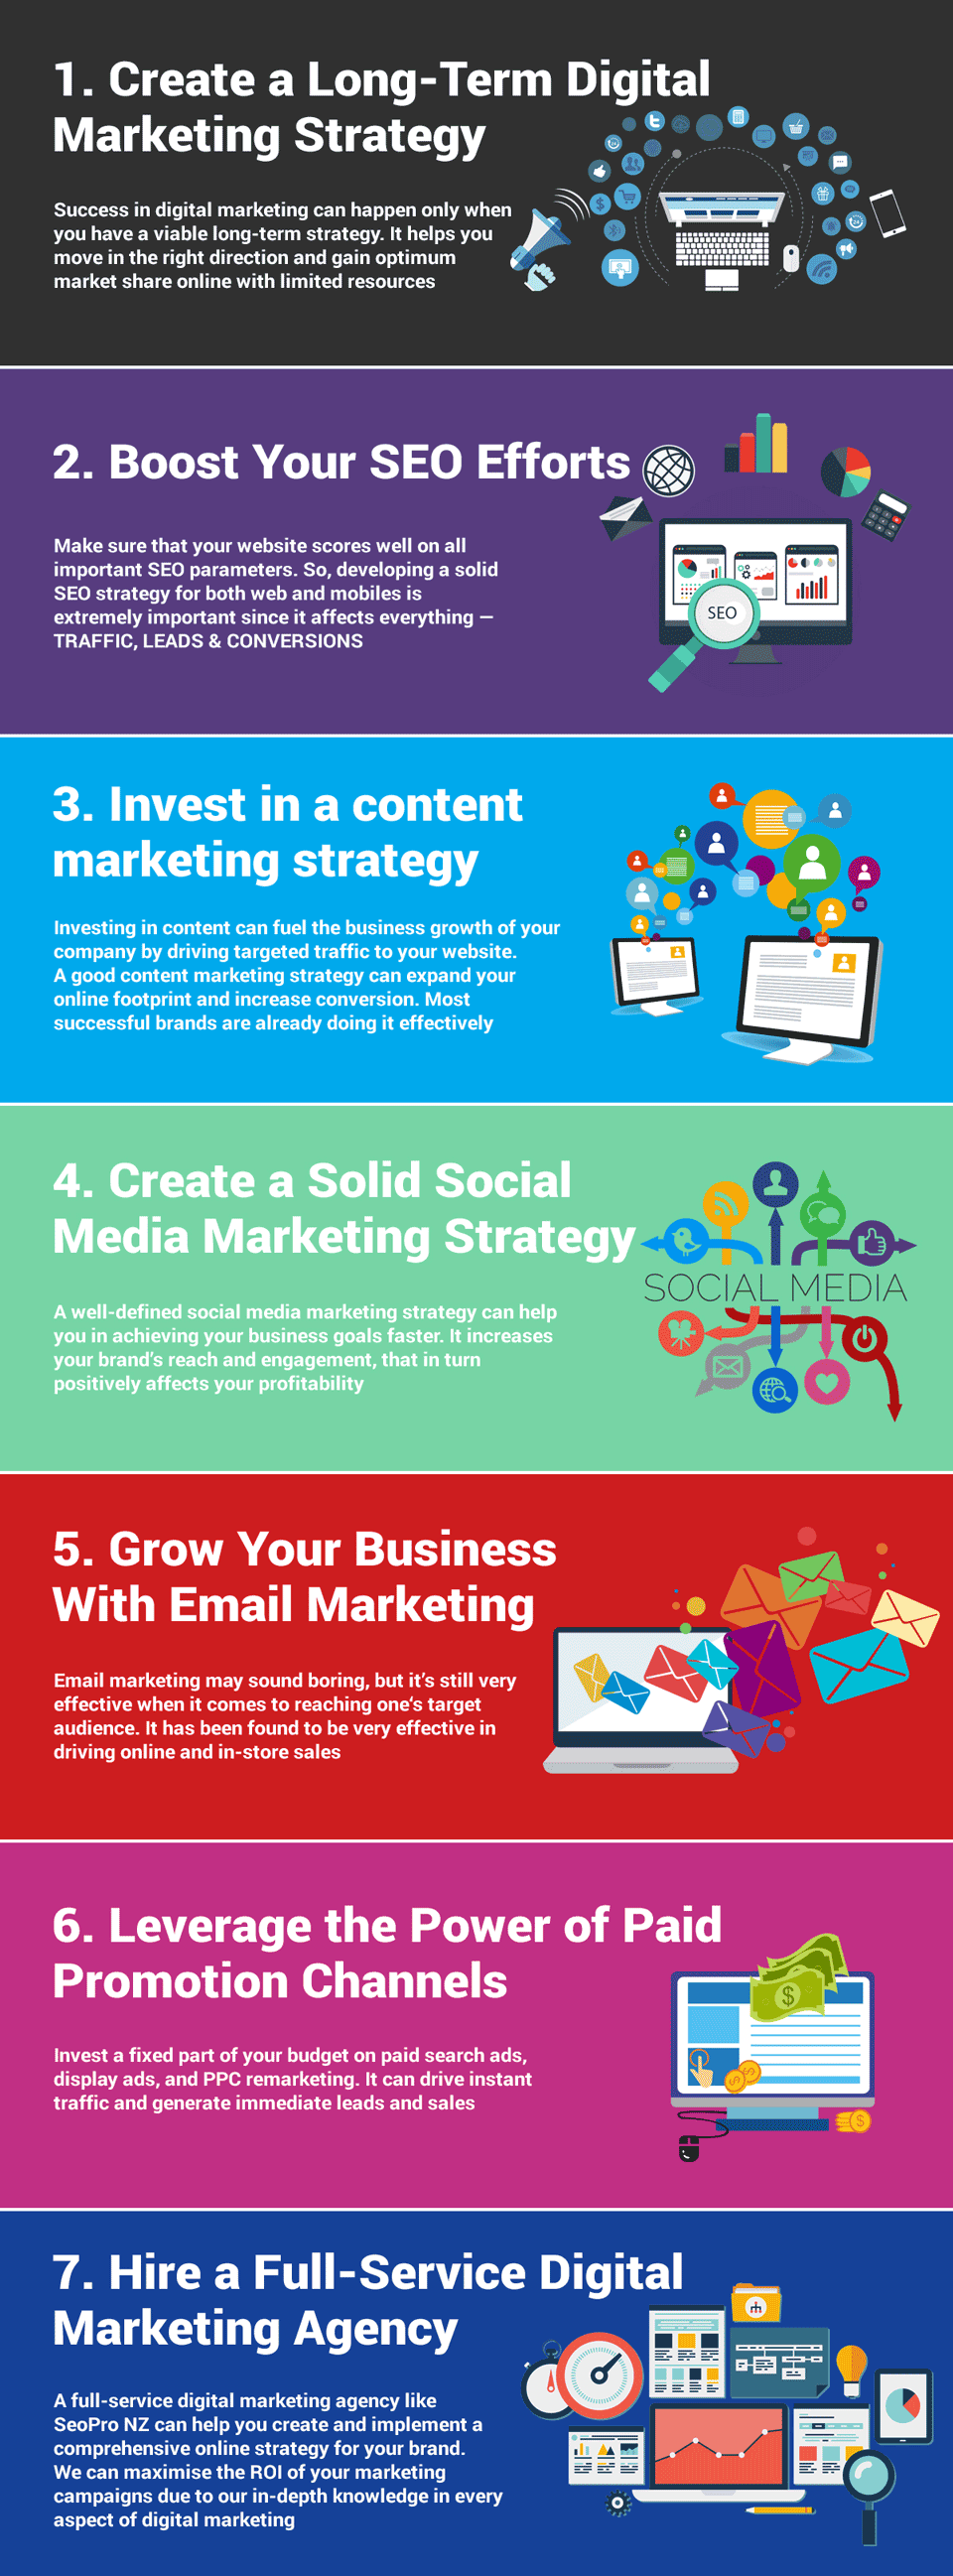 7 Powerful Ways to Grow Your Business Online